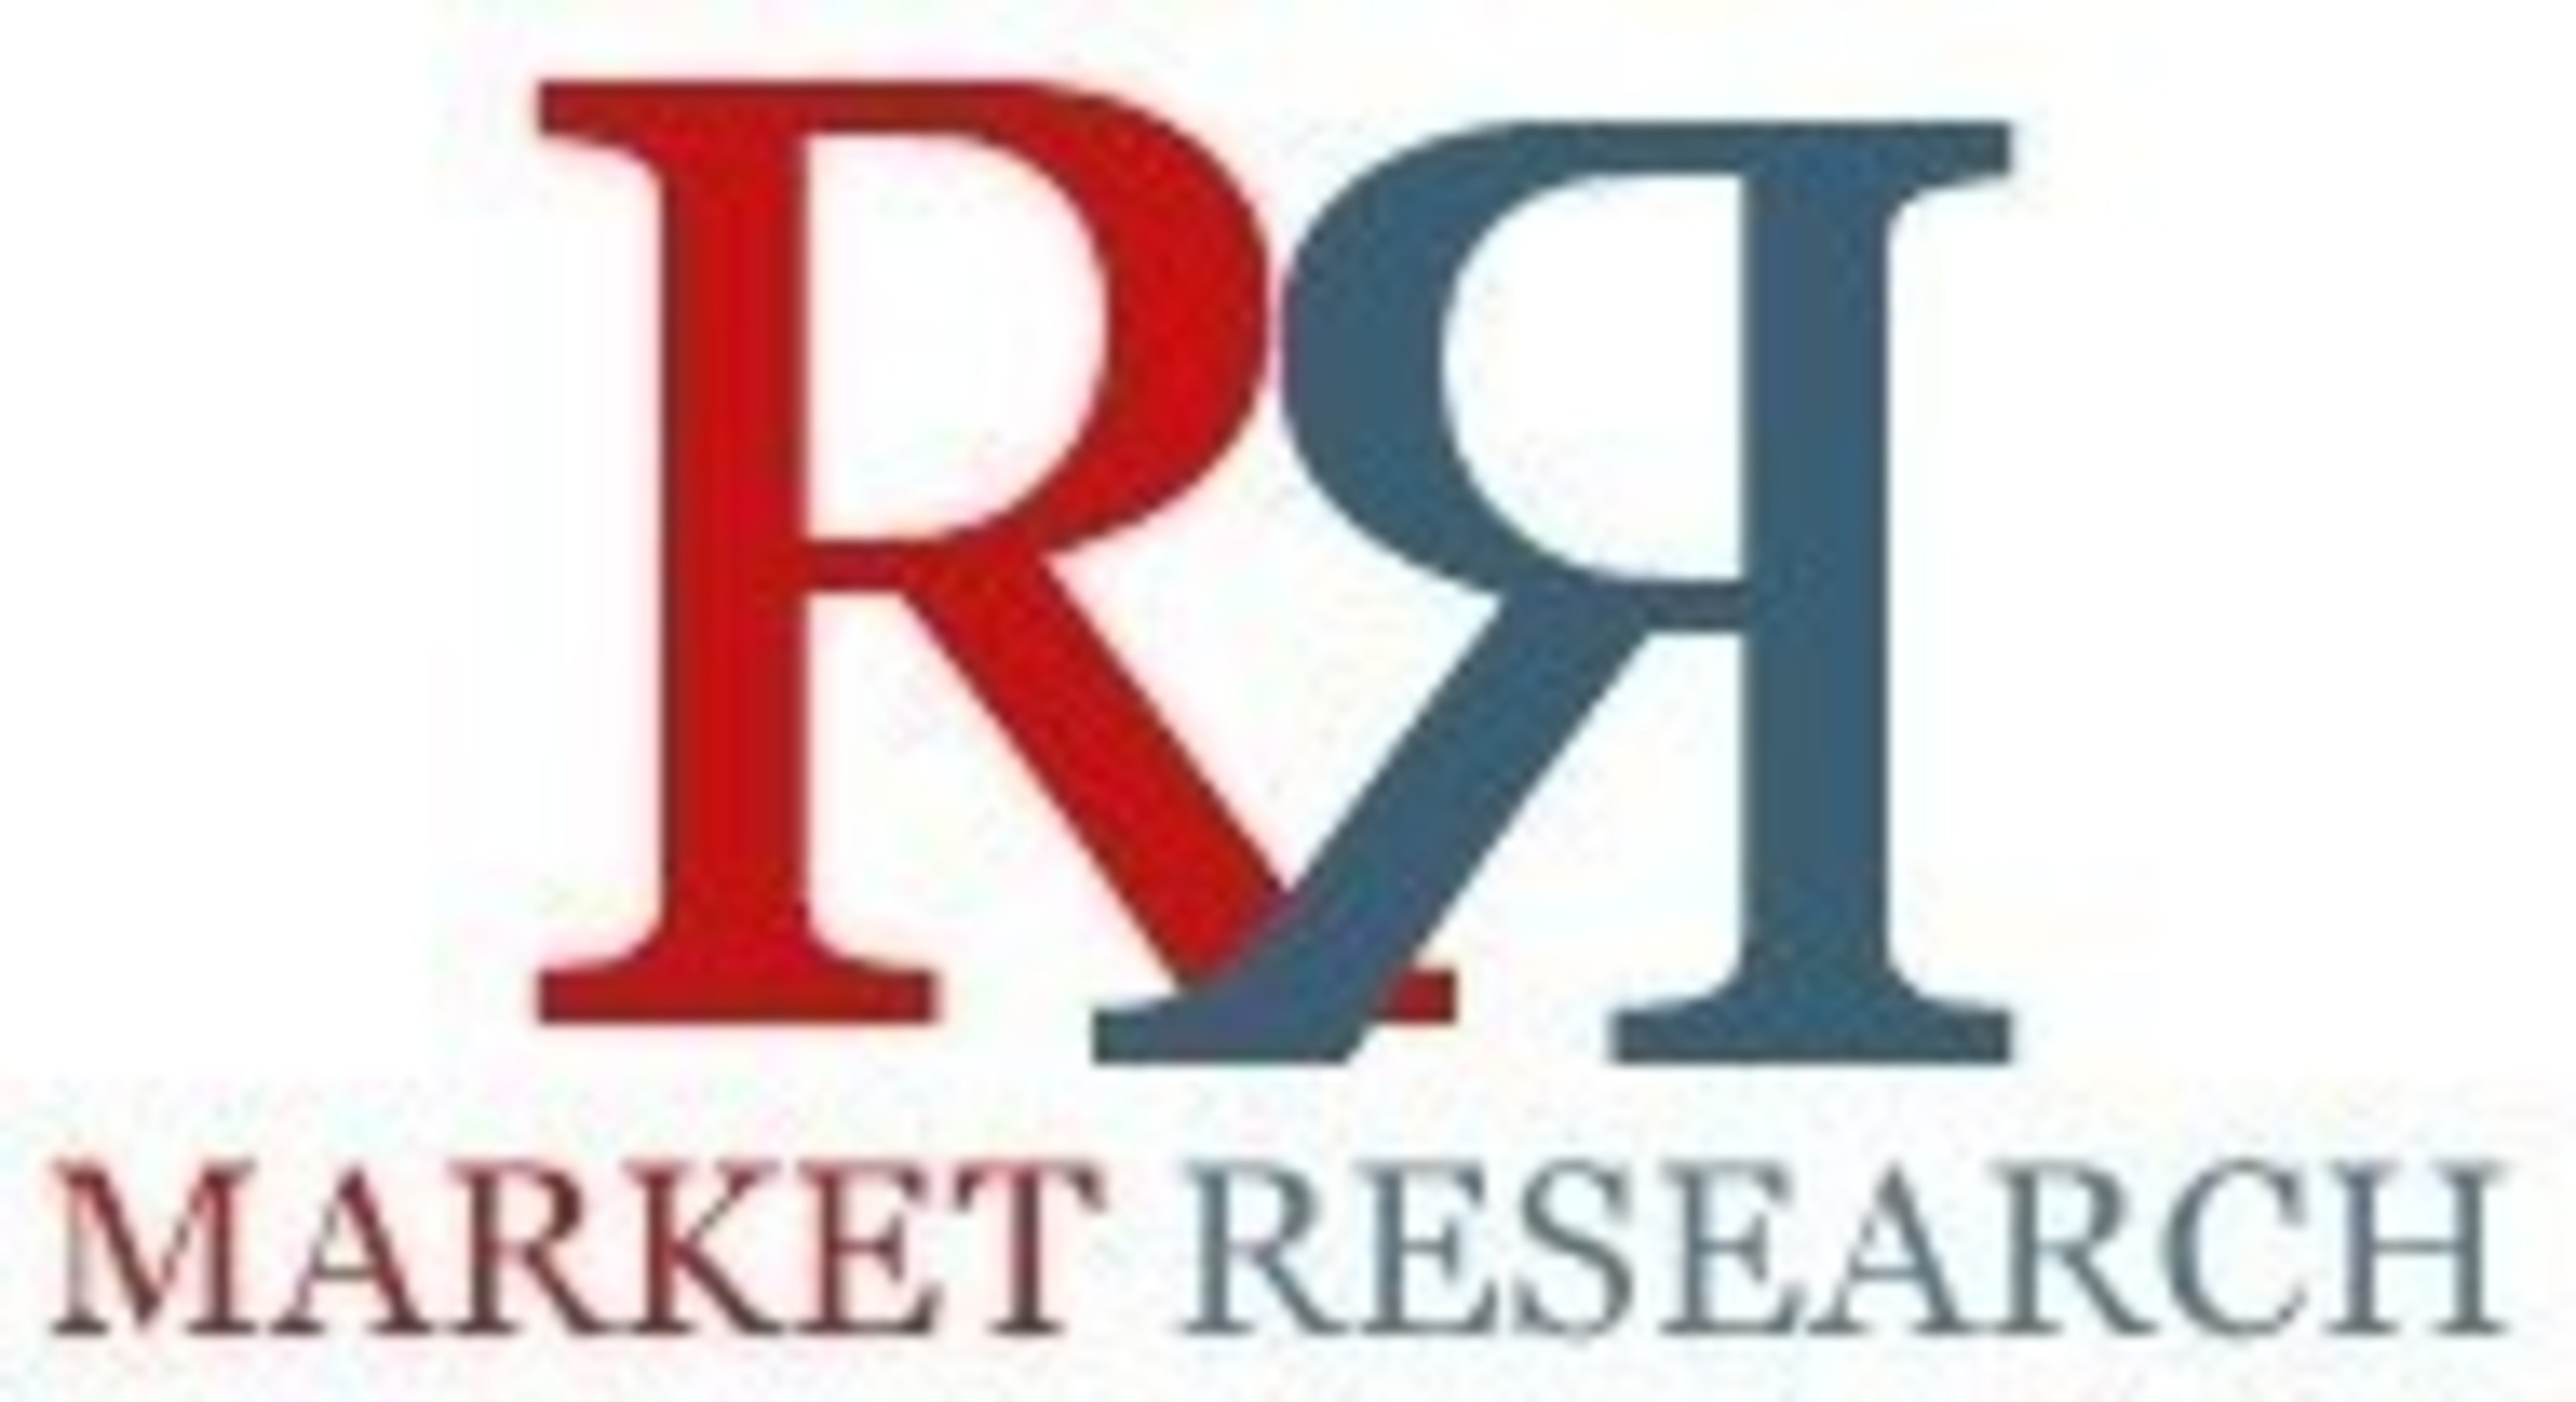 Civilian Drones Market to Grow at 28% CAGR to 2019 Forecasts a Global Report